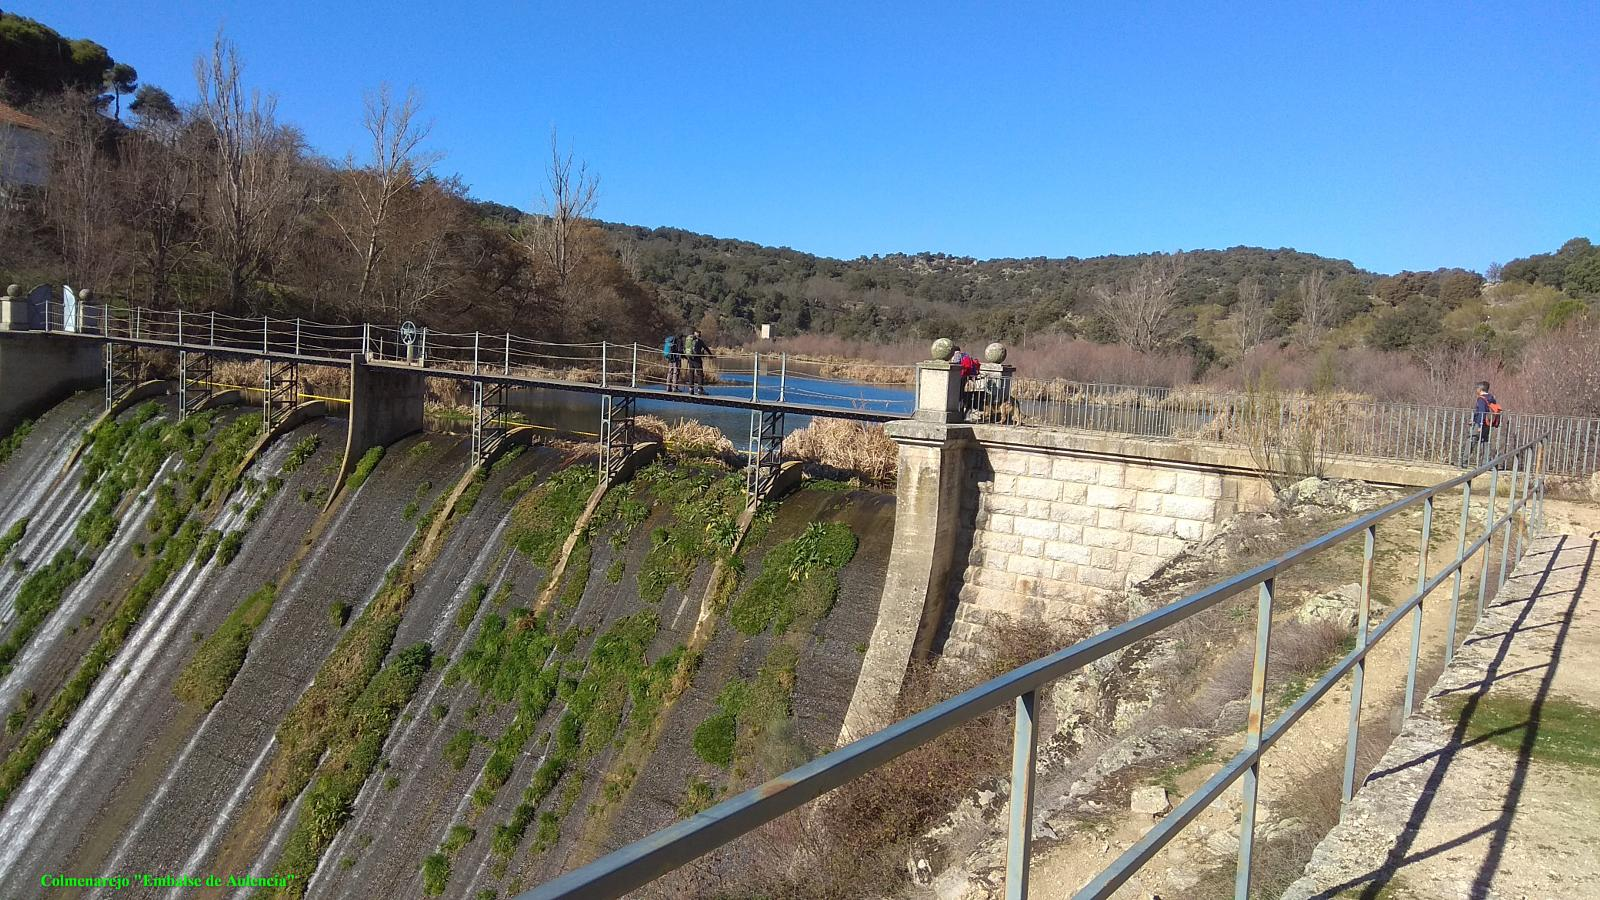 Photo of Embalse de Aulencia